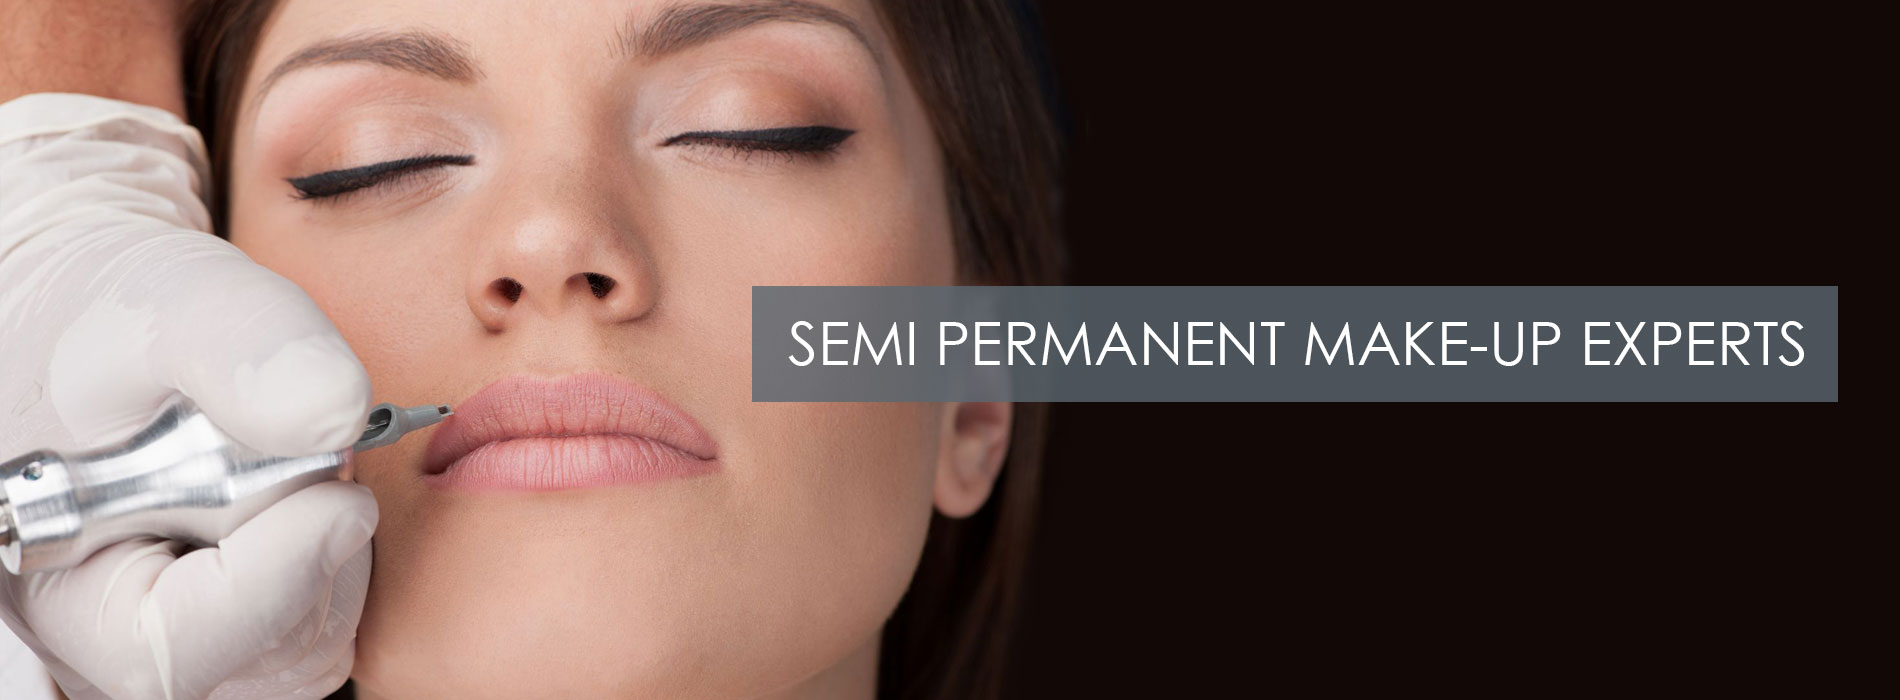 semi-permanent-make-up